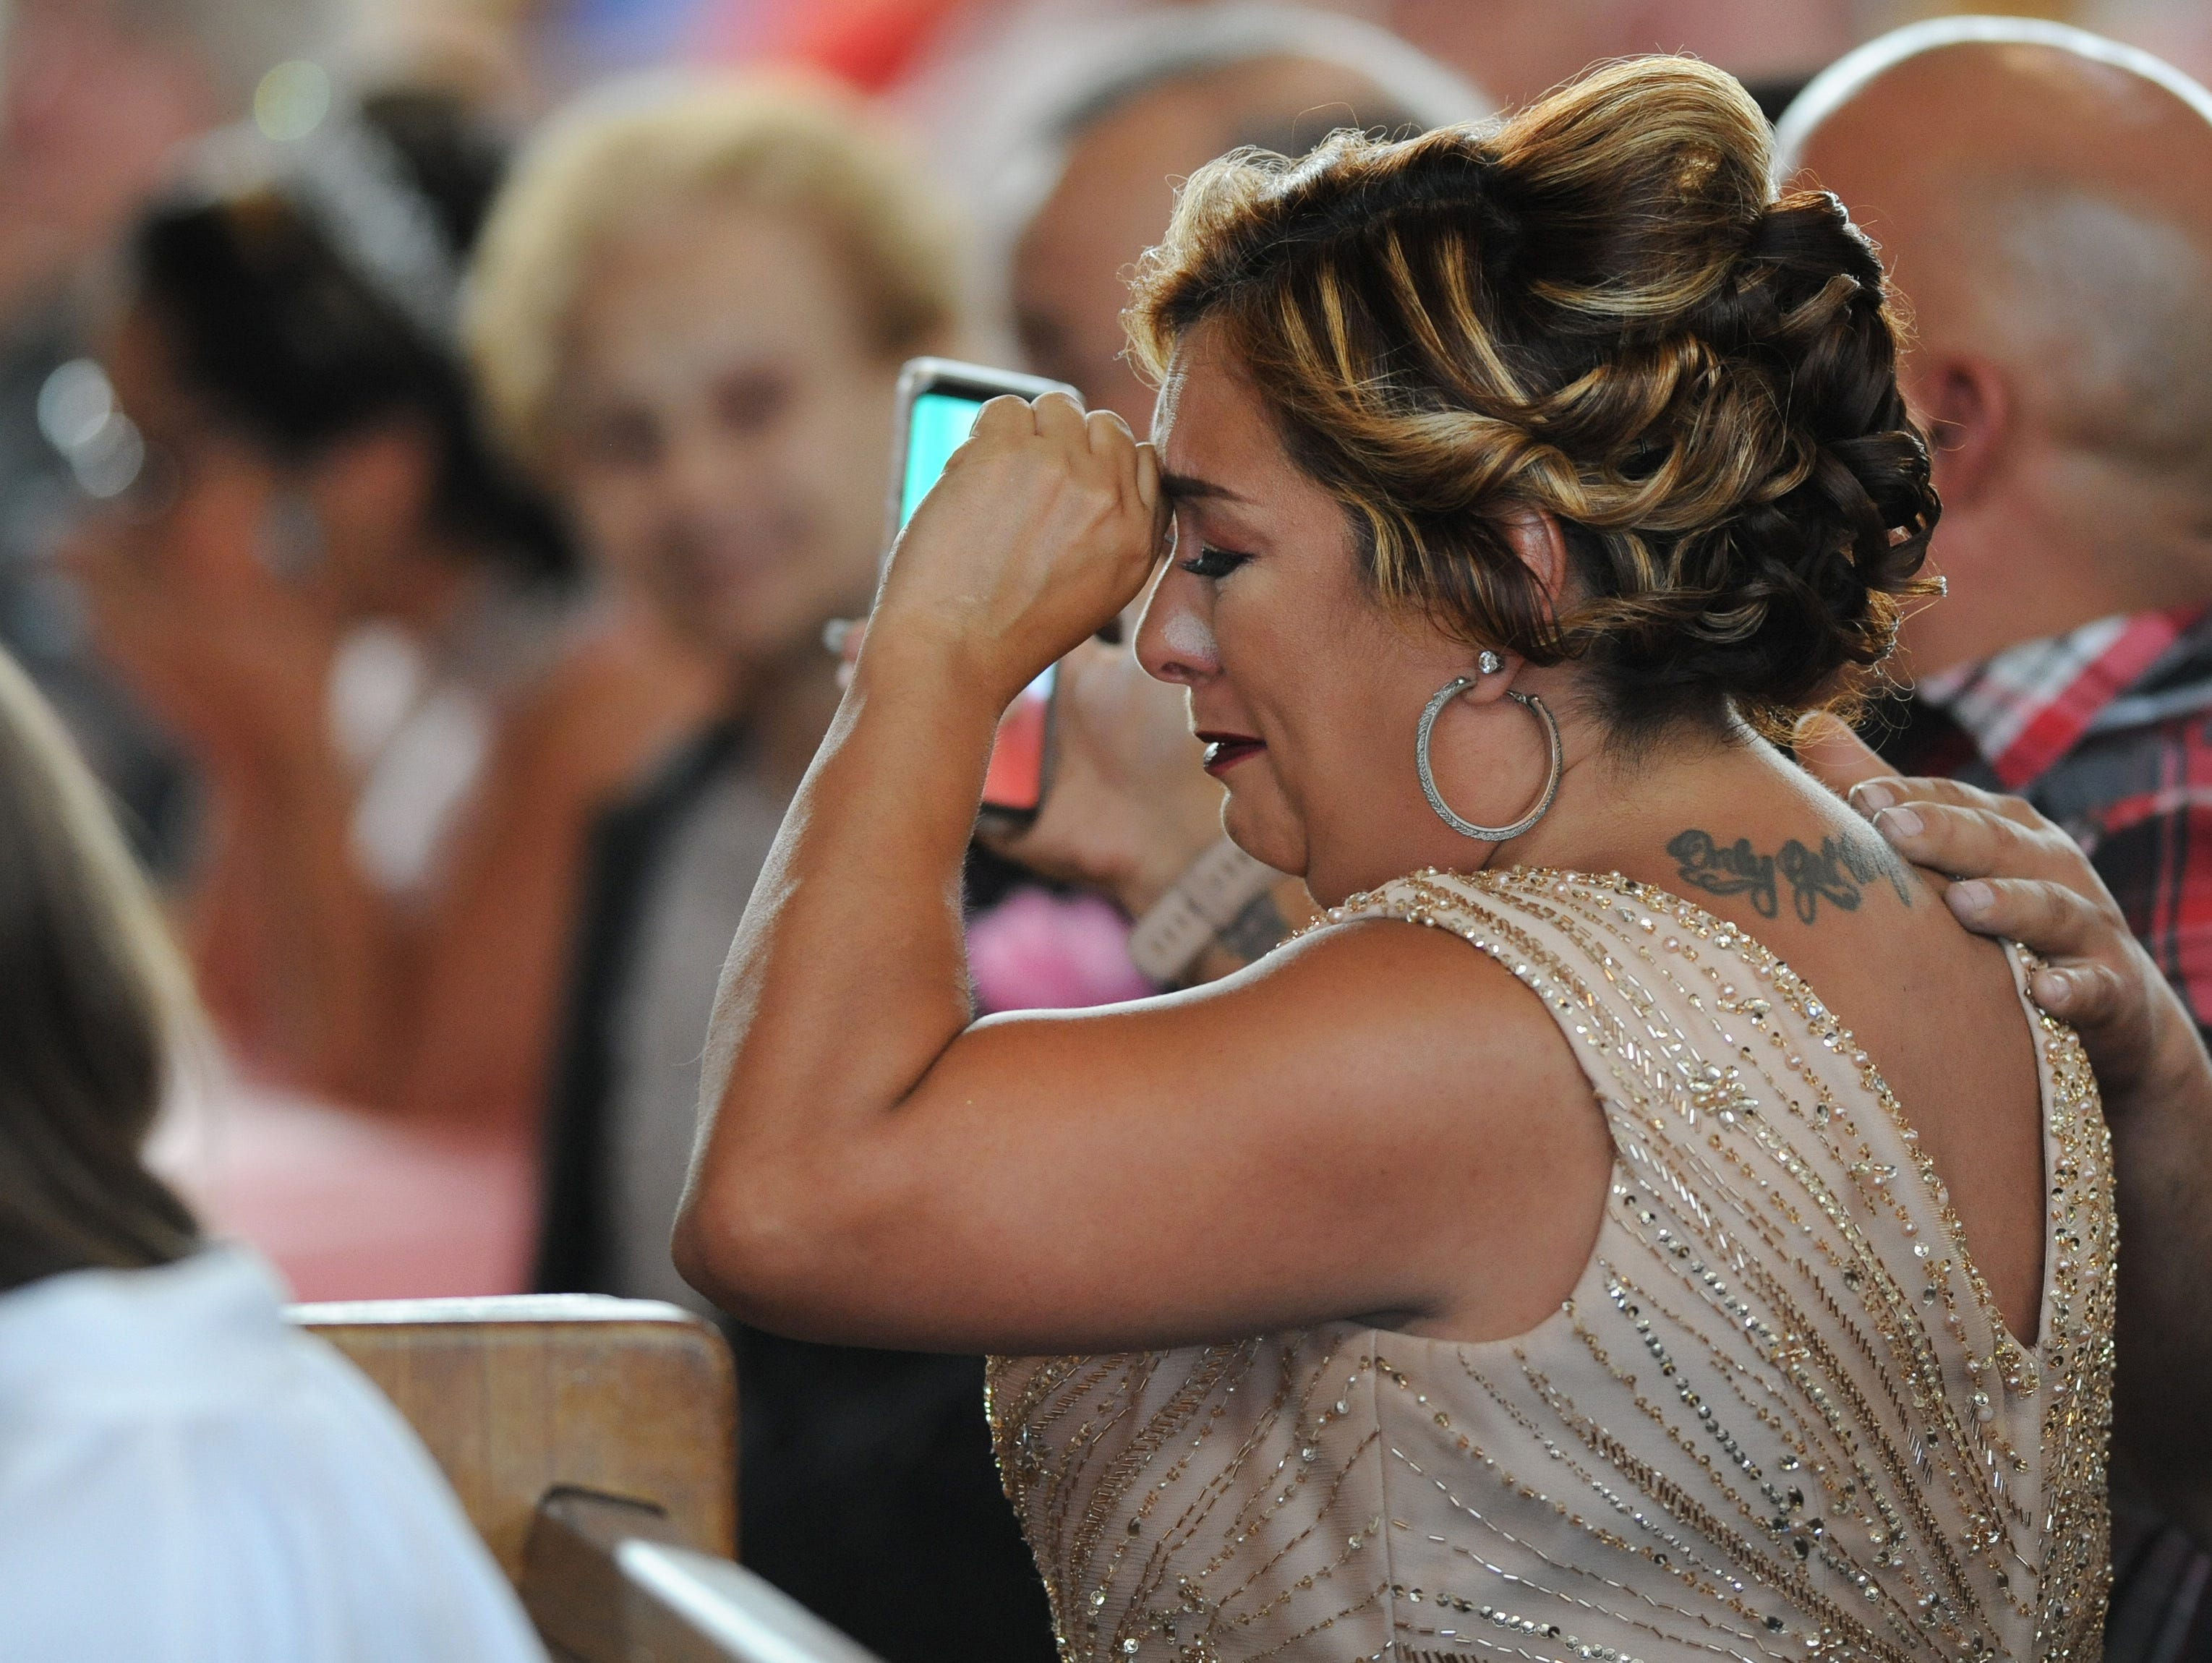 Cindy Garcia begins to cry after the priest acknowledges the absence of her husband, Jorge, at their daughter Soleil's quinceañera Mass in late July.